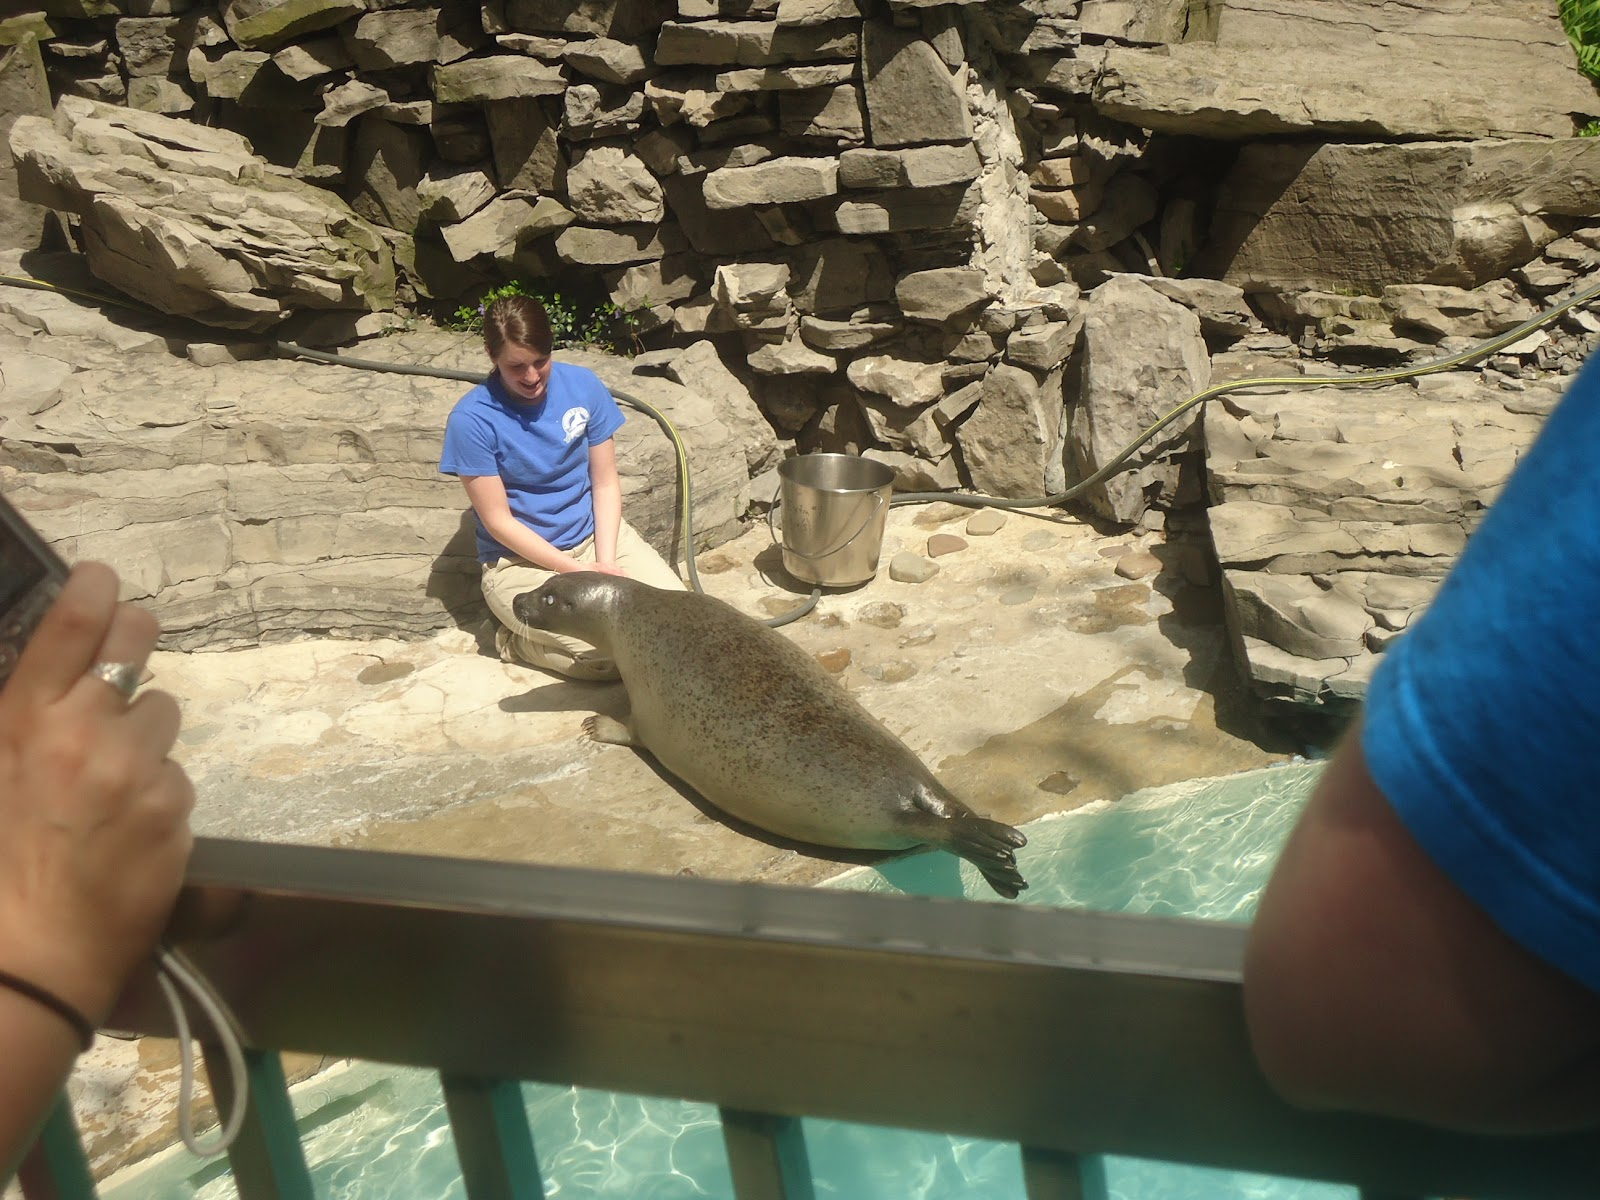 Fish aquarium in niagara falls - When We Arrived We Saw The Outdoor Seals Being Fed These Are Harbor Seals Every One Of Them Has A Different Sort Of Injury Or Disability That They Were